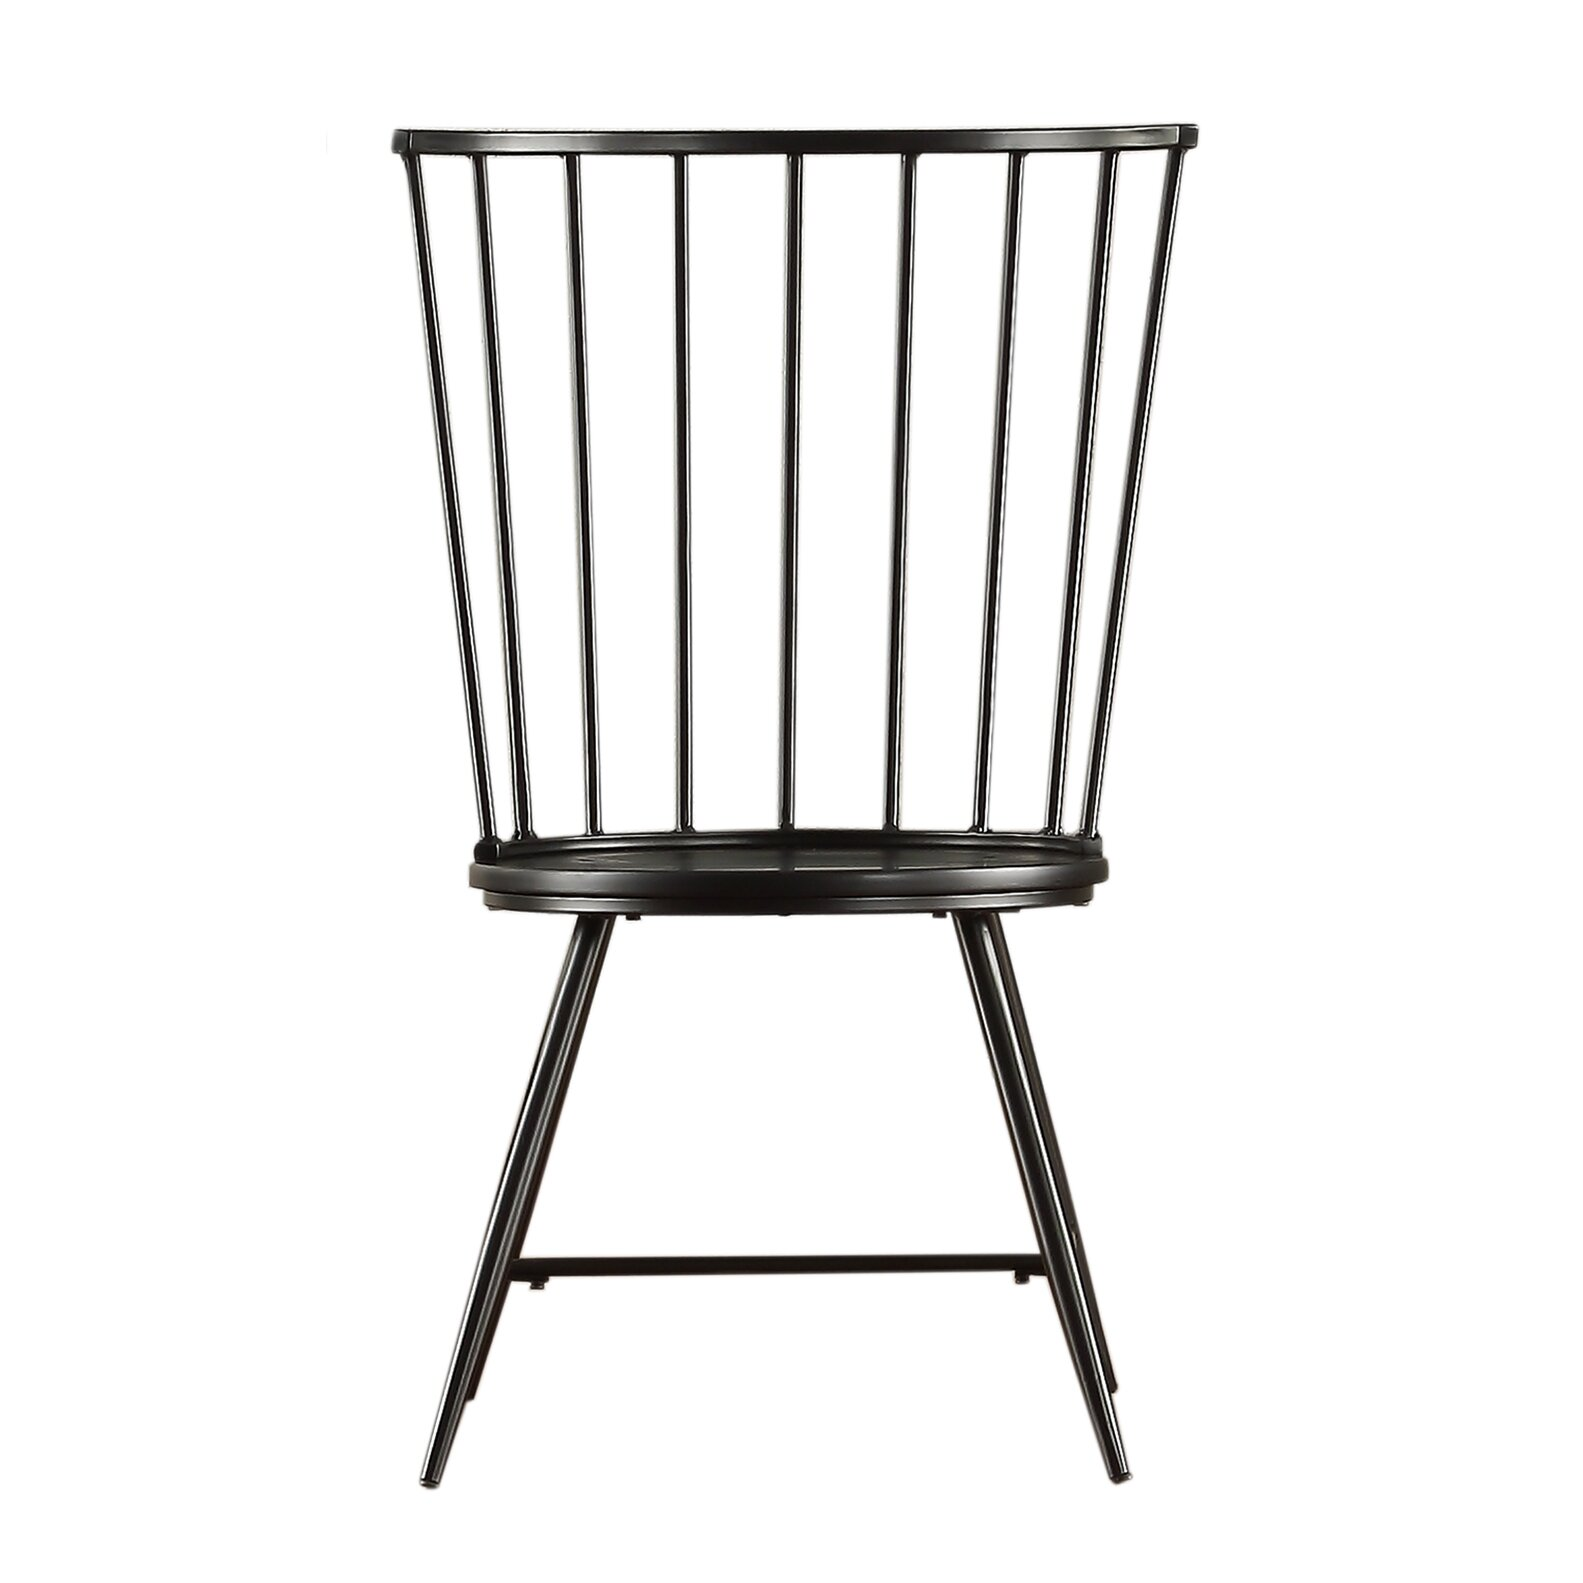 Laurel foundry modern farmhouse athis side chair reviews for Modern farmhouse dining chairs